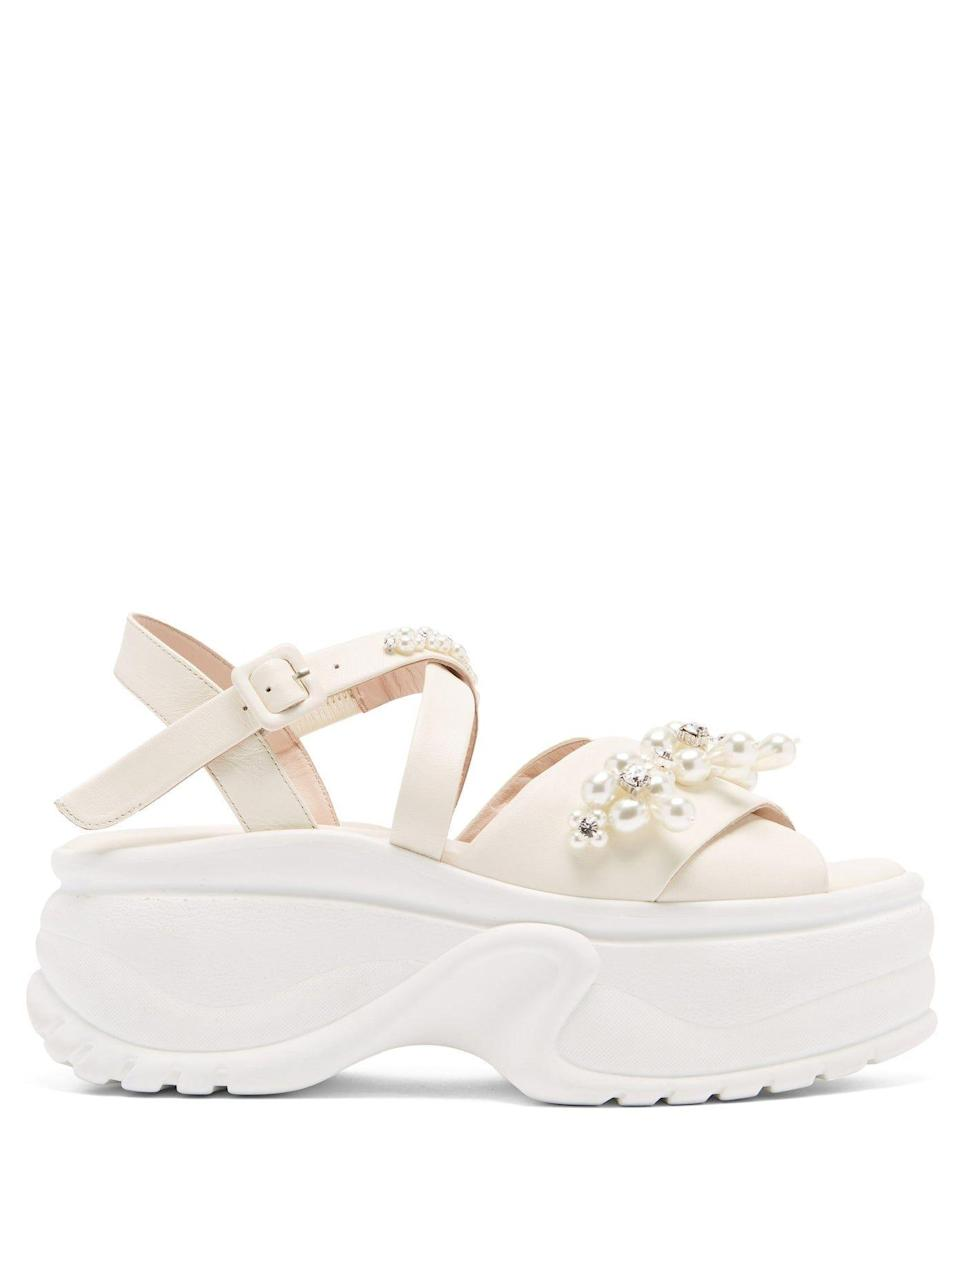 """<p><strong>Simone Rocha</strong></p><p>matchesfashion.com</p><p><strong>$905.00</strong></p><p><a href=""""https://go.redirectingat.com?id=74968X1596630&url=https%3A%2F%2Fwww.matchesfashion.com%2Fus%2Fproducts%2F1405529&sref=https%3A%2F%2Fwww.harpersbazaar.com%2Fwedding%2Fbridal-fashion%2Fg36113322%2Fwedding-flats-for-brides%2F"""" rel=""""nofollow noopener"""" target=""""_blank"""" data-ylk=""""slk:SHOP NOW"""" class=""""link rapid-noclick-resp"""">SHOP NOW</a></p><p>When it comes to comfort, platforms are always a go-to. These embellished leather flatform sandals will give you an added edge and all the extra inches, without the trials of high heels.<br></p>"""